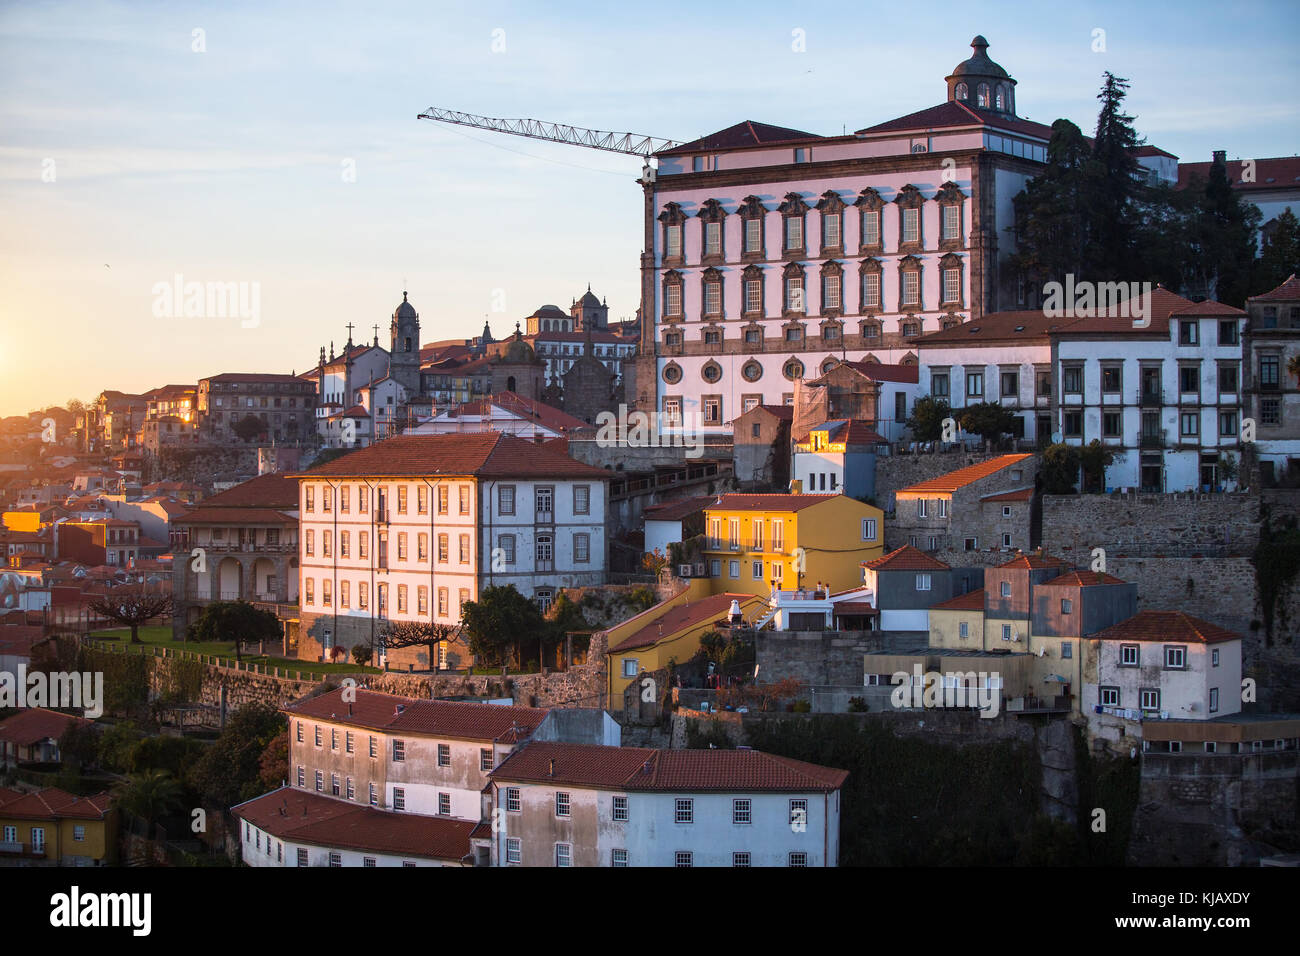 Facades of buildings in central part of the old Porto, Portugal. - Stock Image